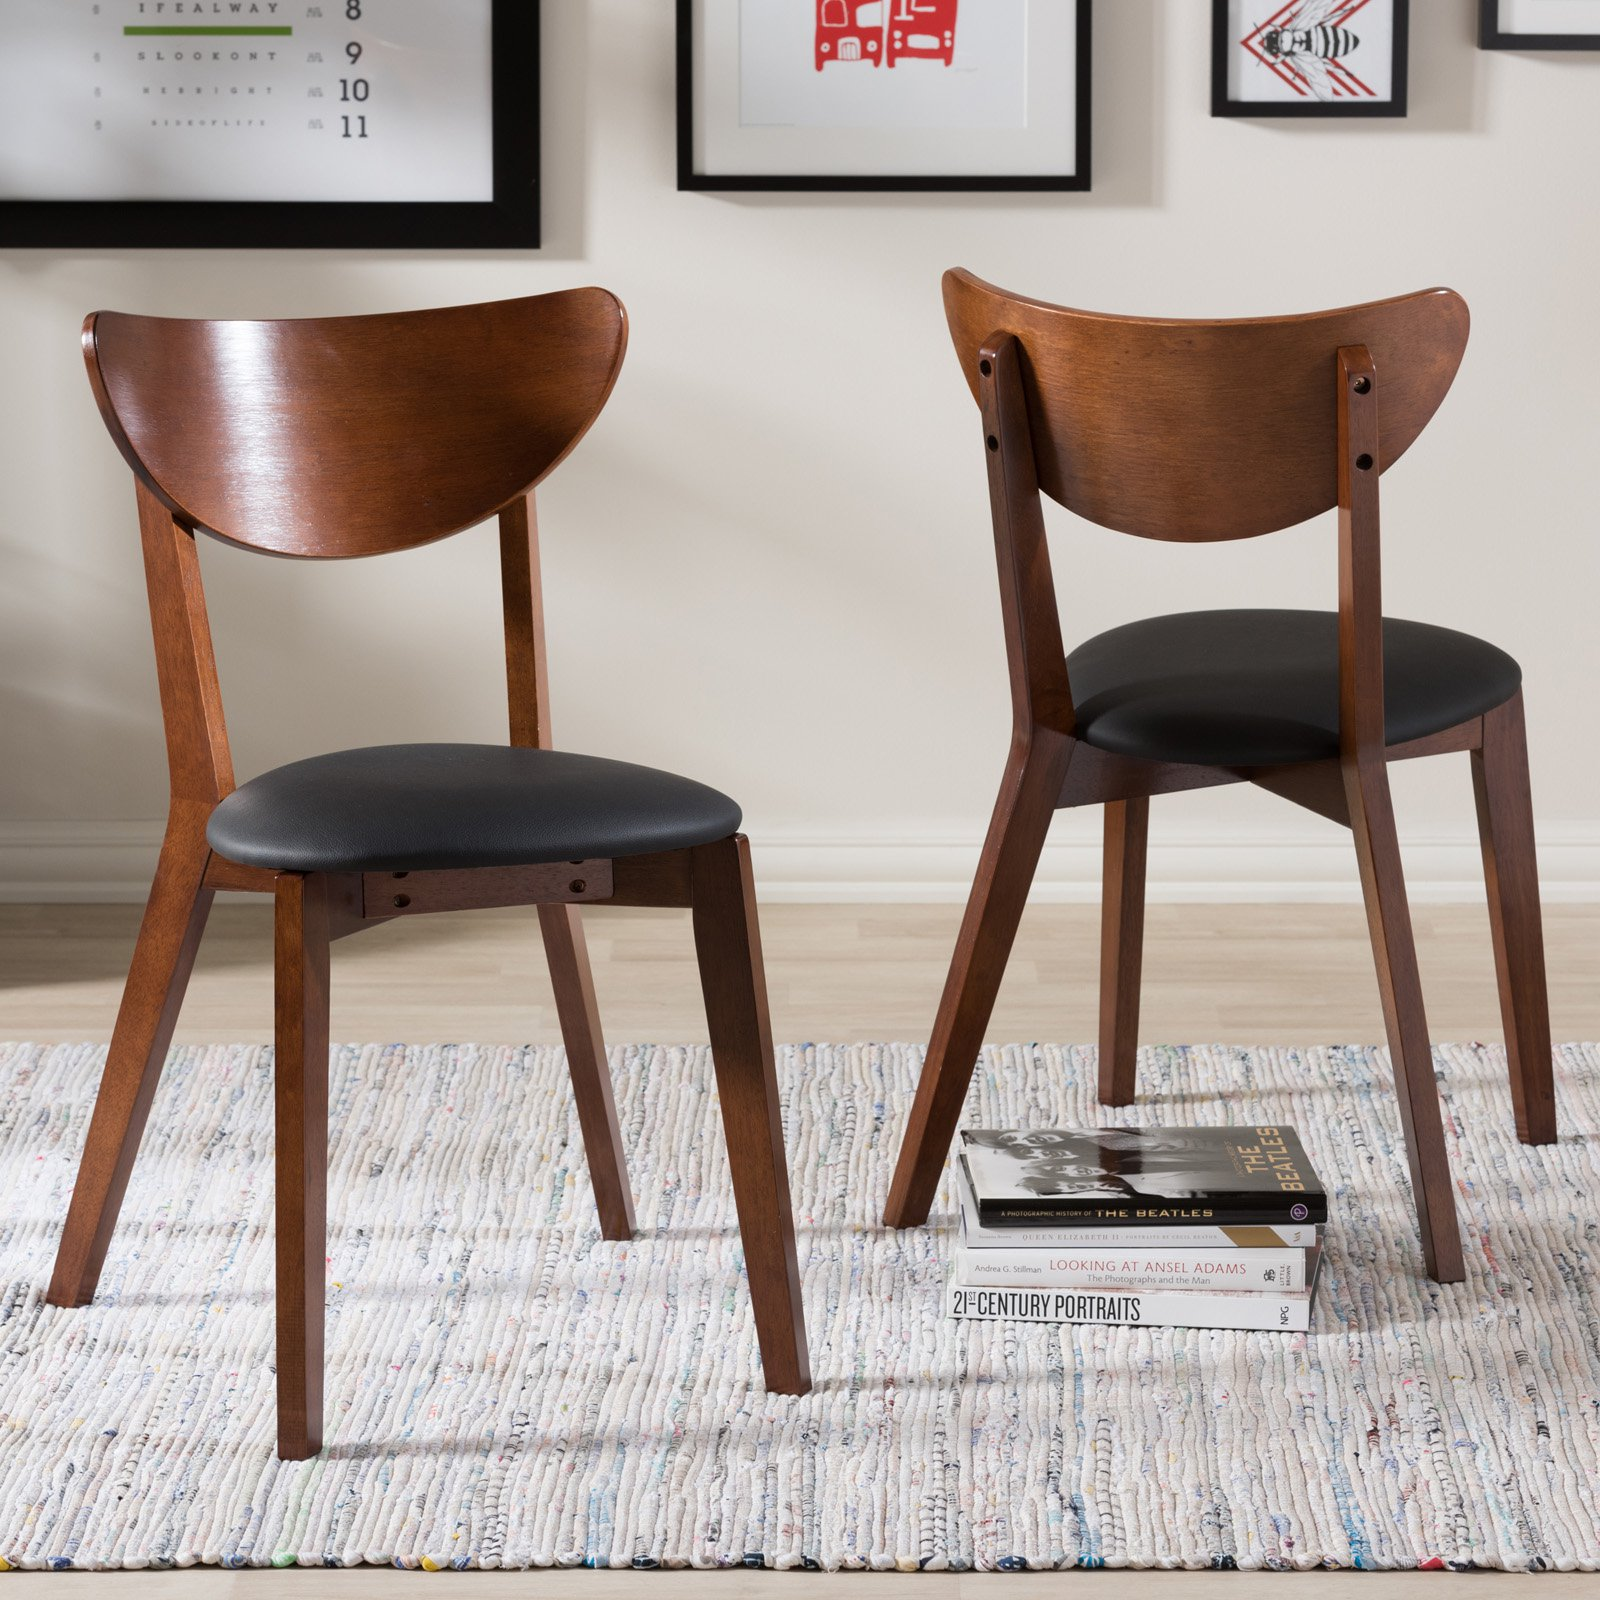 Baxton Studio Sumner Mid-Century Black Faux Leather and Walnut Brown Dining Chairs, Set of 2